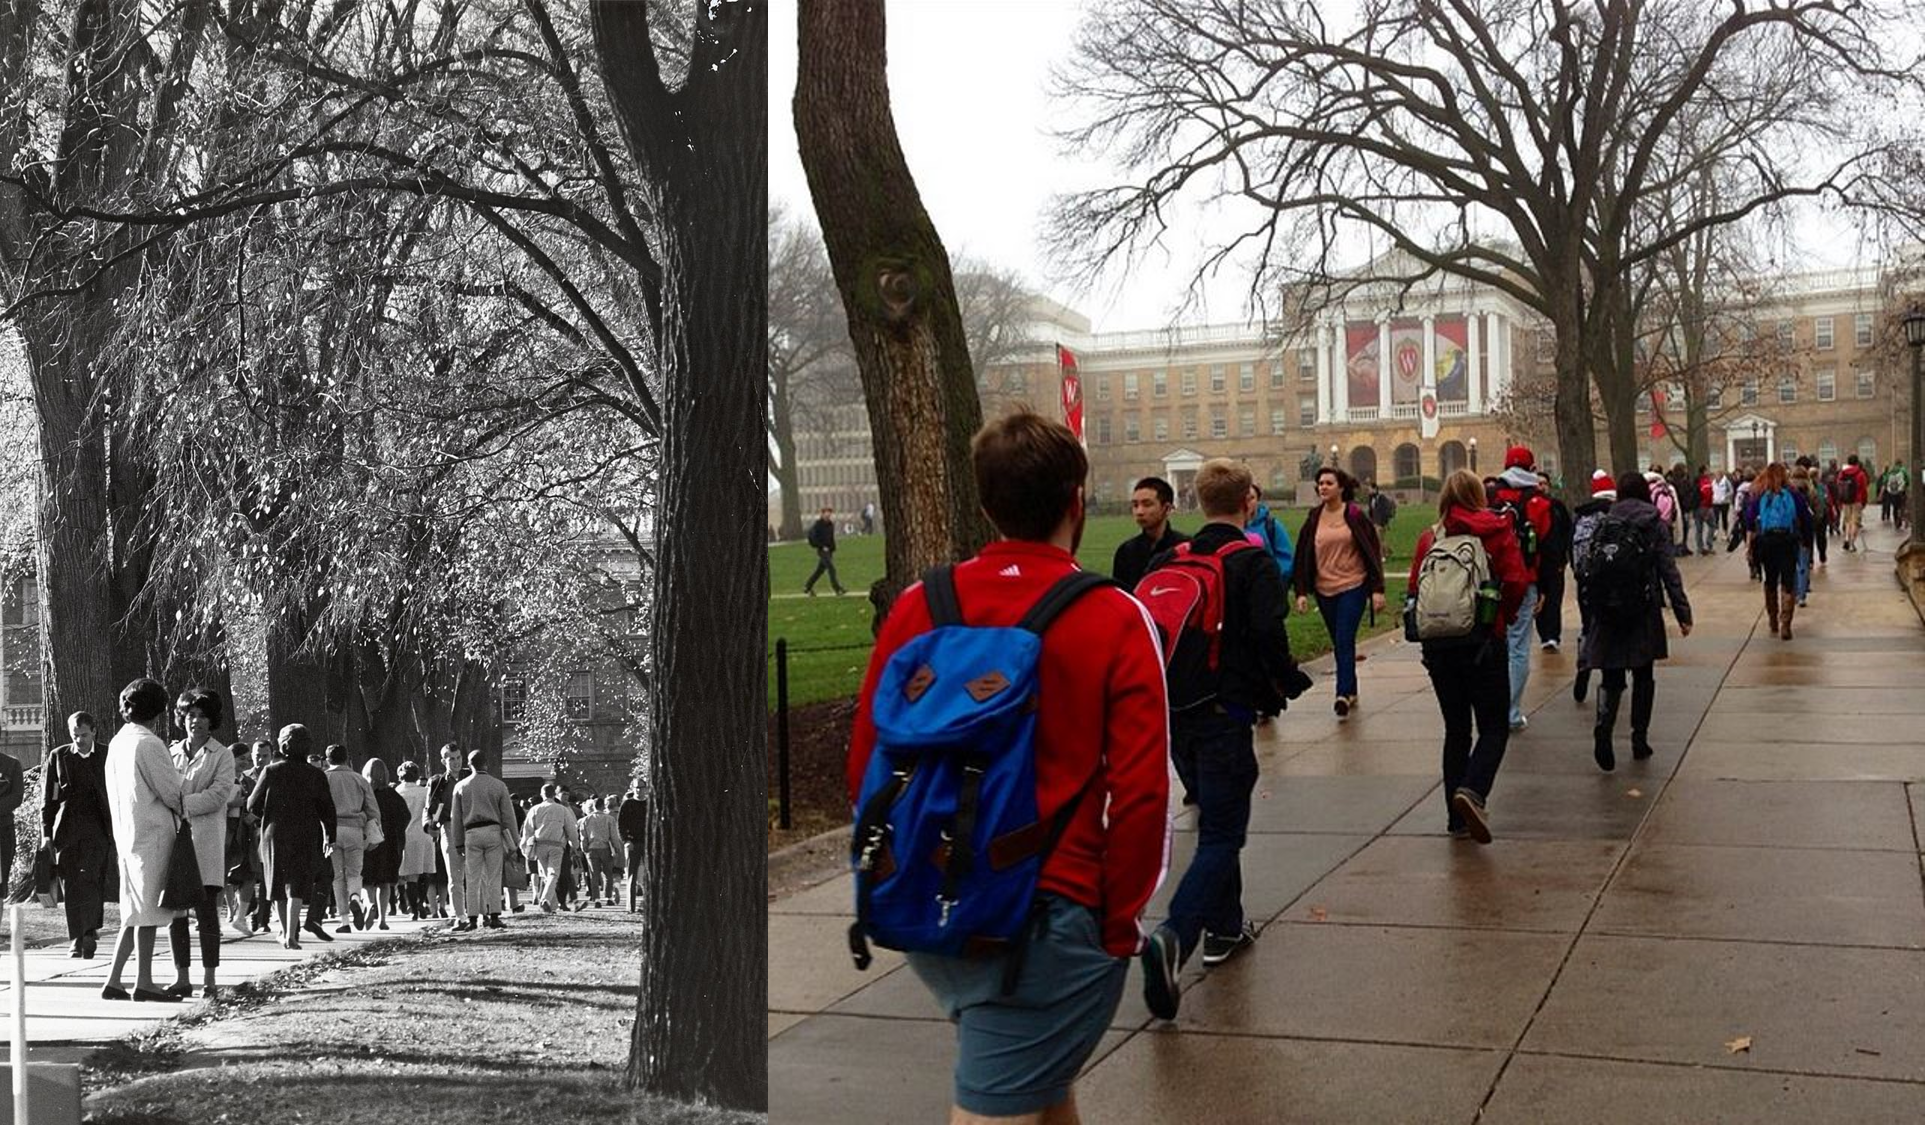 Left: Crowds of students make the trek up Bascom Hill circa 1960. Right: Bascom is just as steep as it was 50 years ago as students reach the summit.